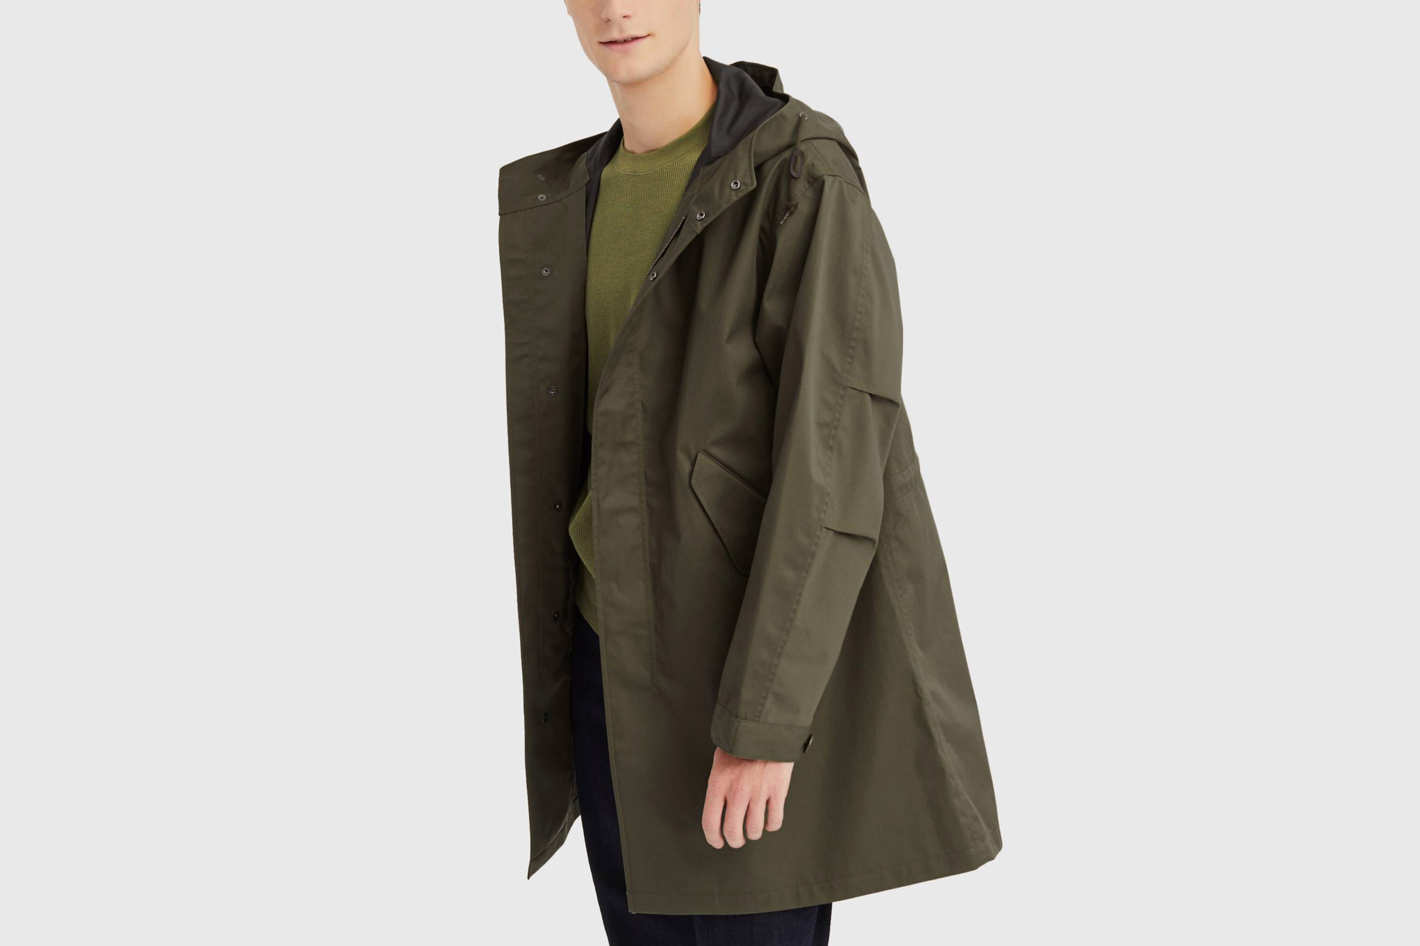 Uniqlo Blocktech Fishtail Parka